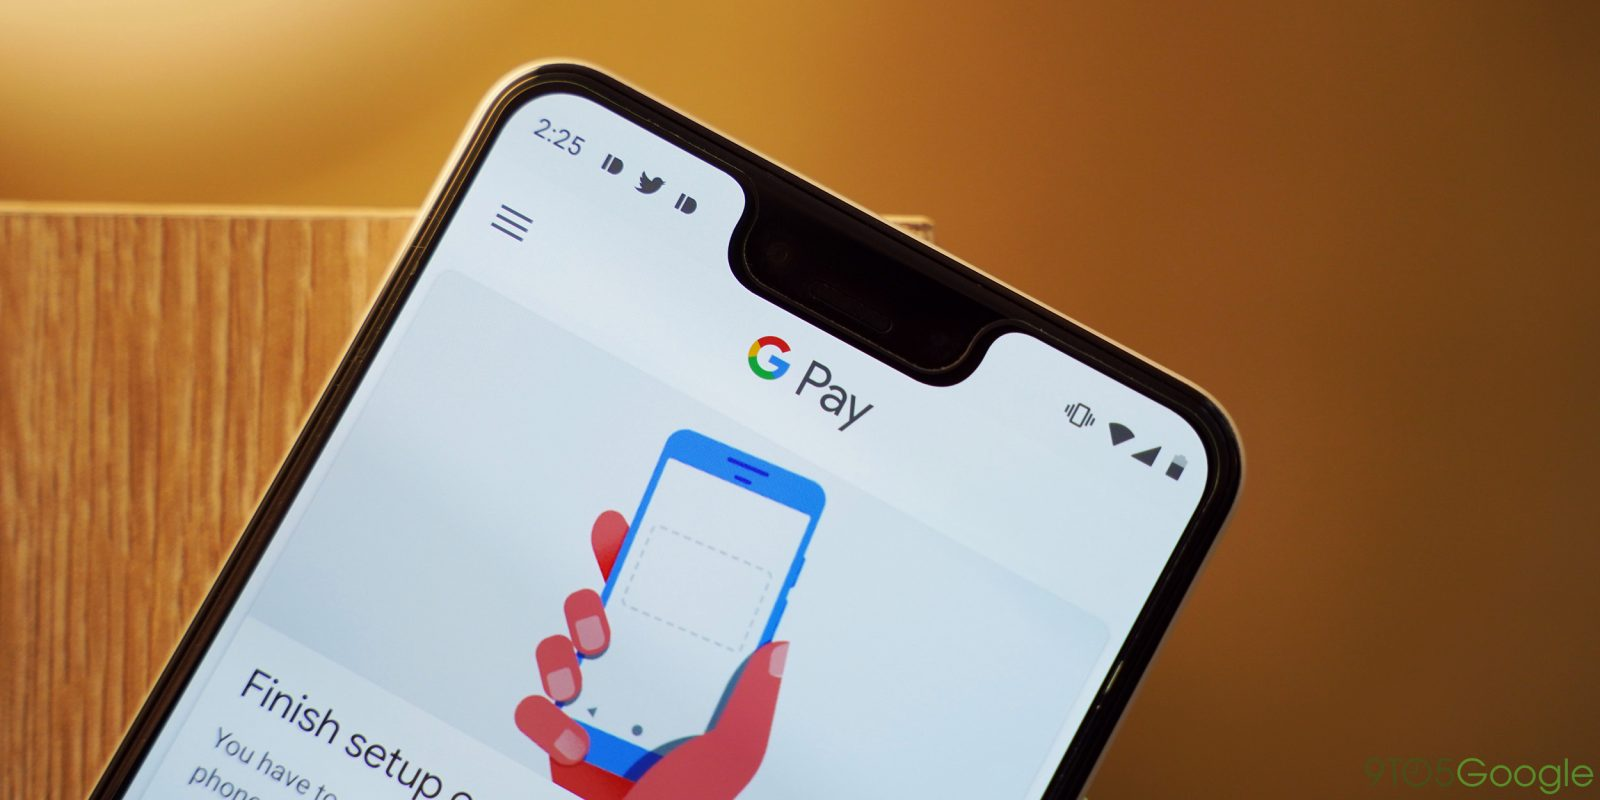 Man lost Rs 96,000 while paying electricity bill on Google Pay